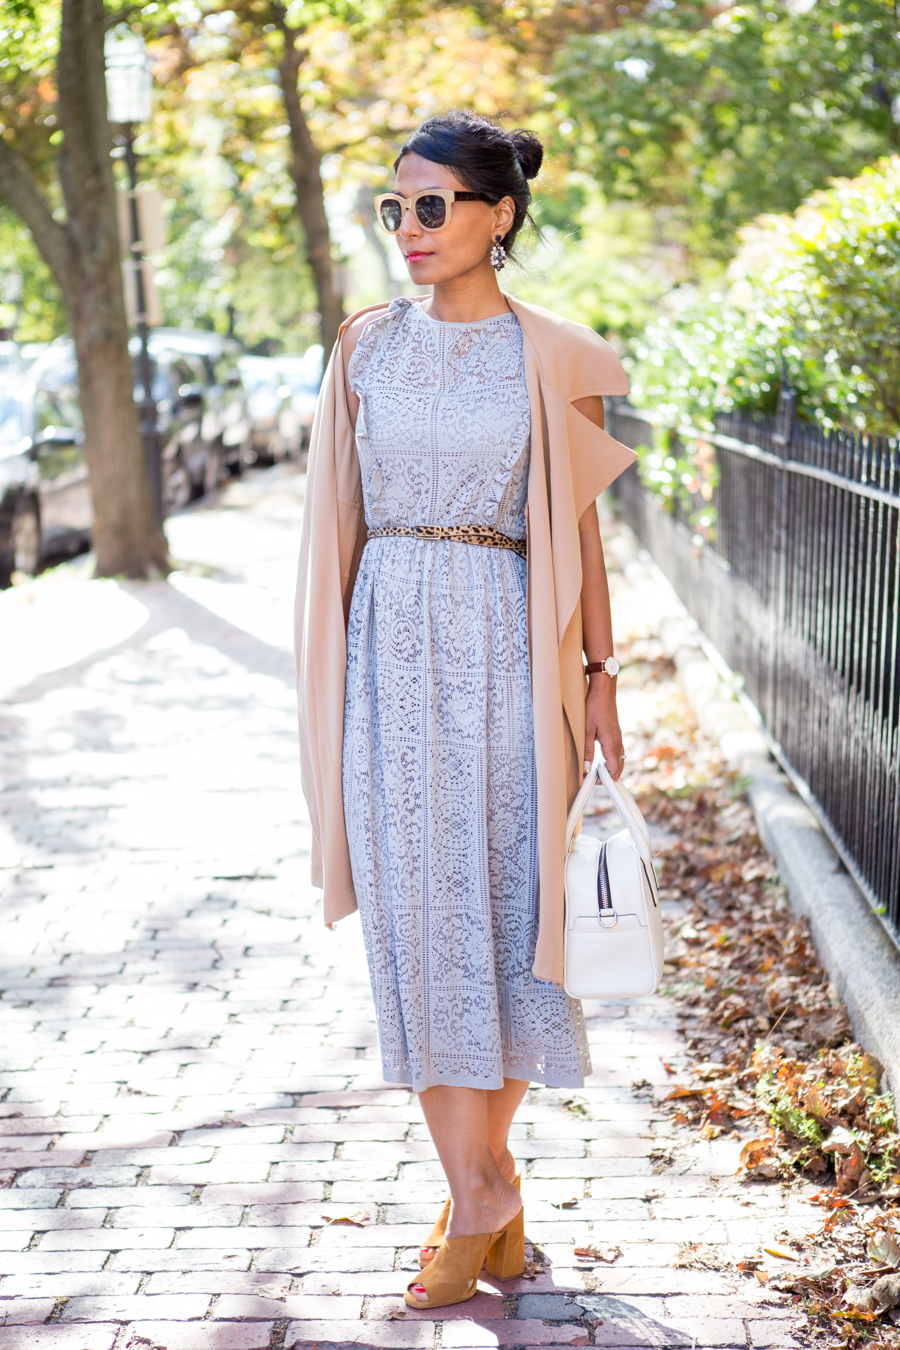 fall fashion, style tips, work style, corporate style, office style, professional attire, corporate chic, sleeveless trench, feminine style, petite fashion, petite style, 9 to 5 chic, business attire, mules, lace dress, work satchel